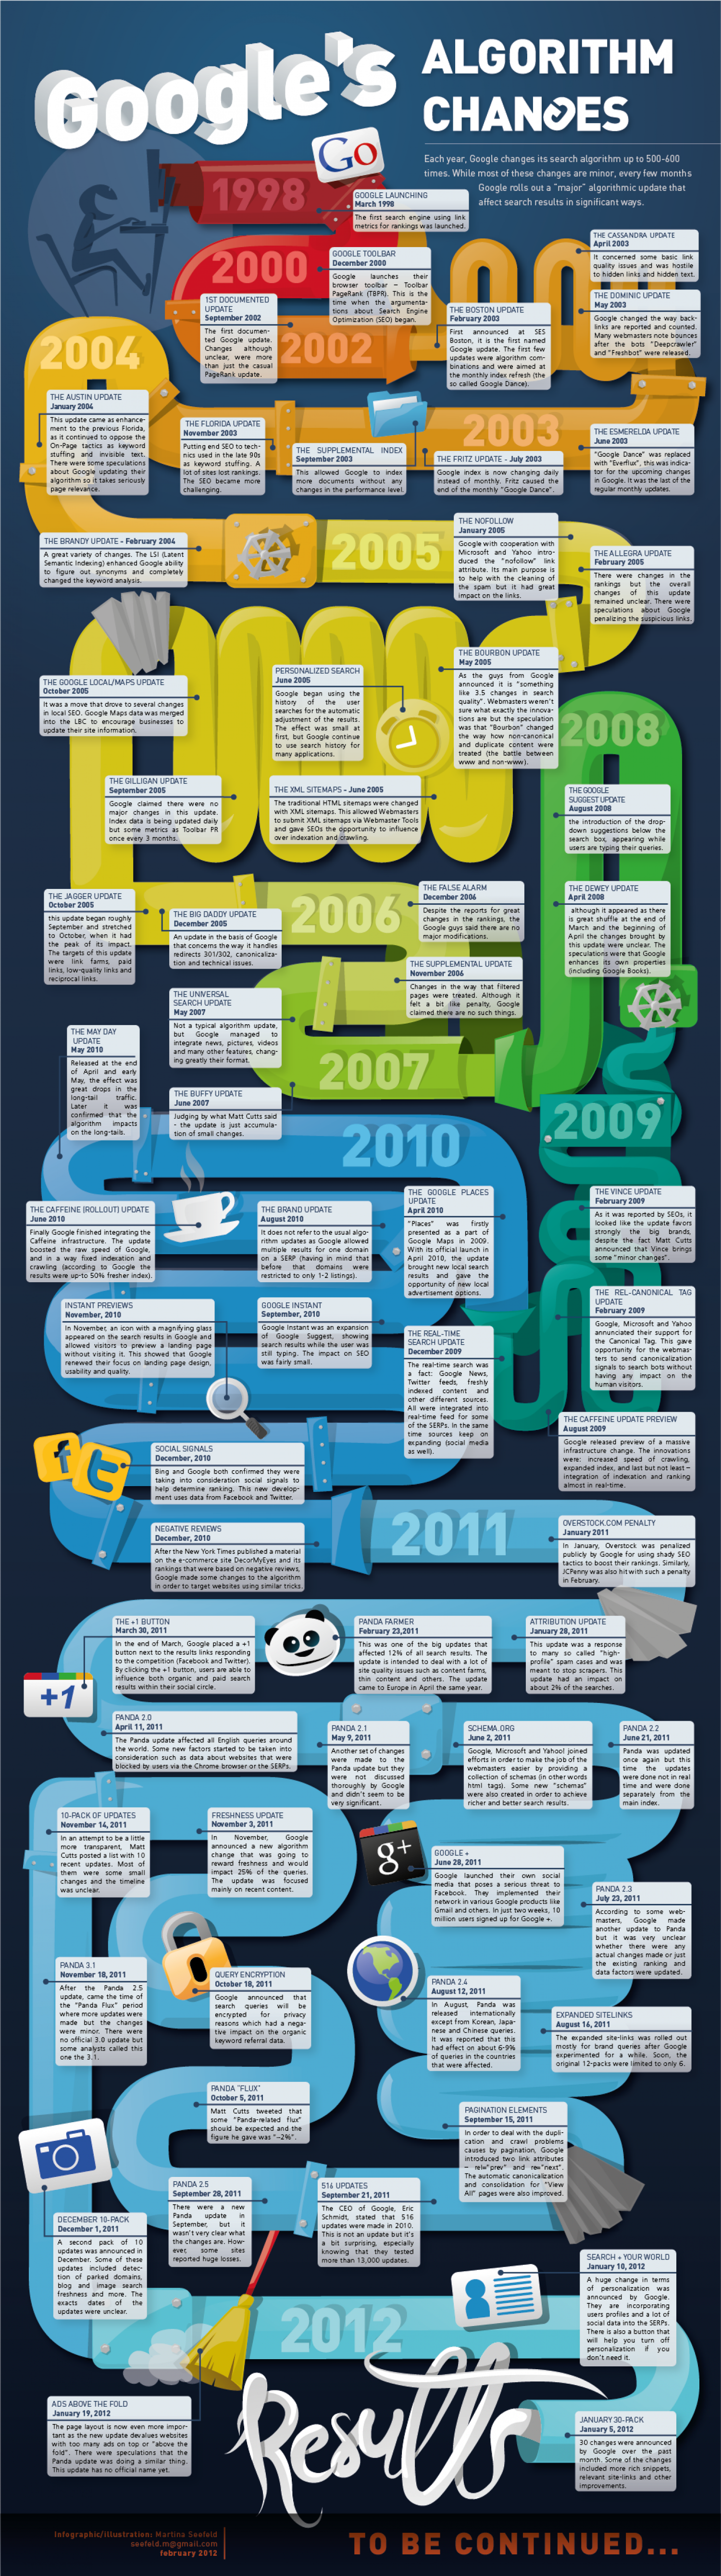 Google Algorithm Changes 1998-2012 Infographic